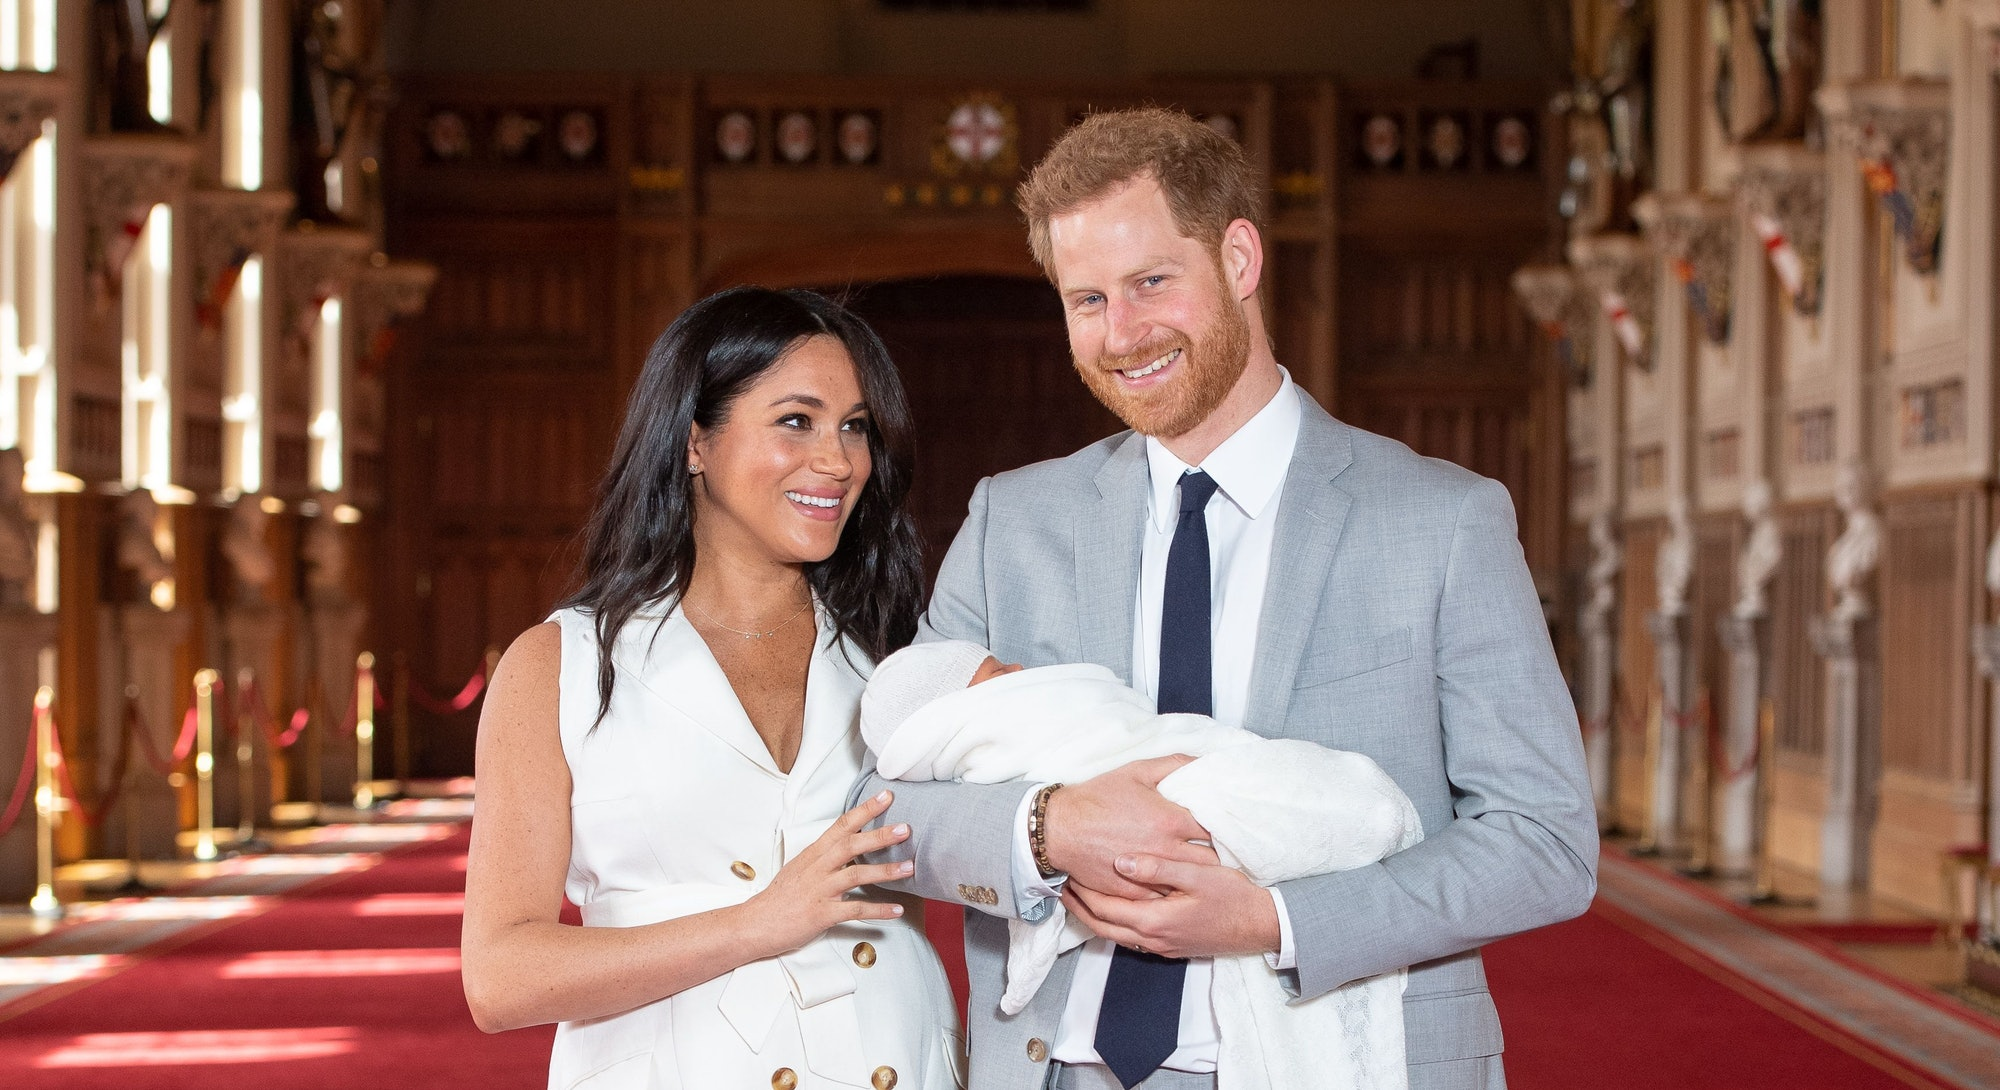 Since welcoming his son Archie, Prince Harry has spoken about how proud he is to be a dad.